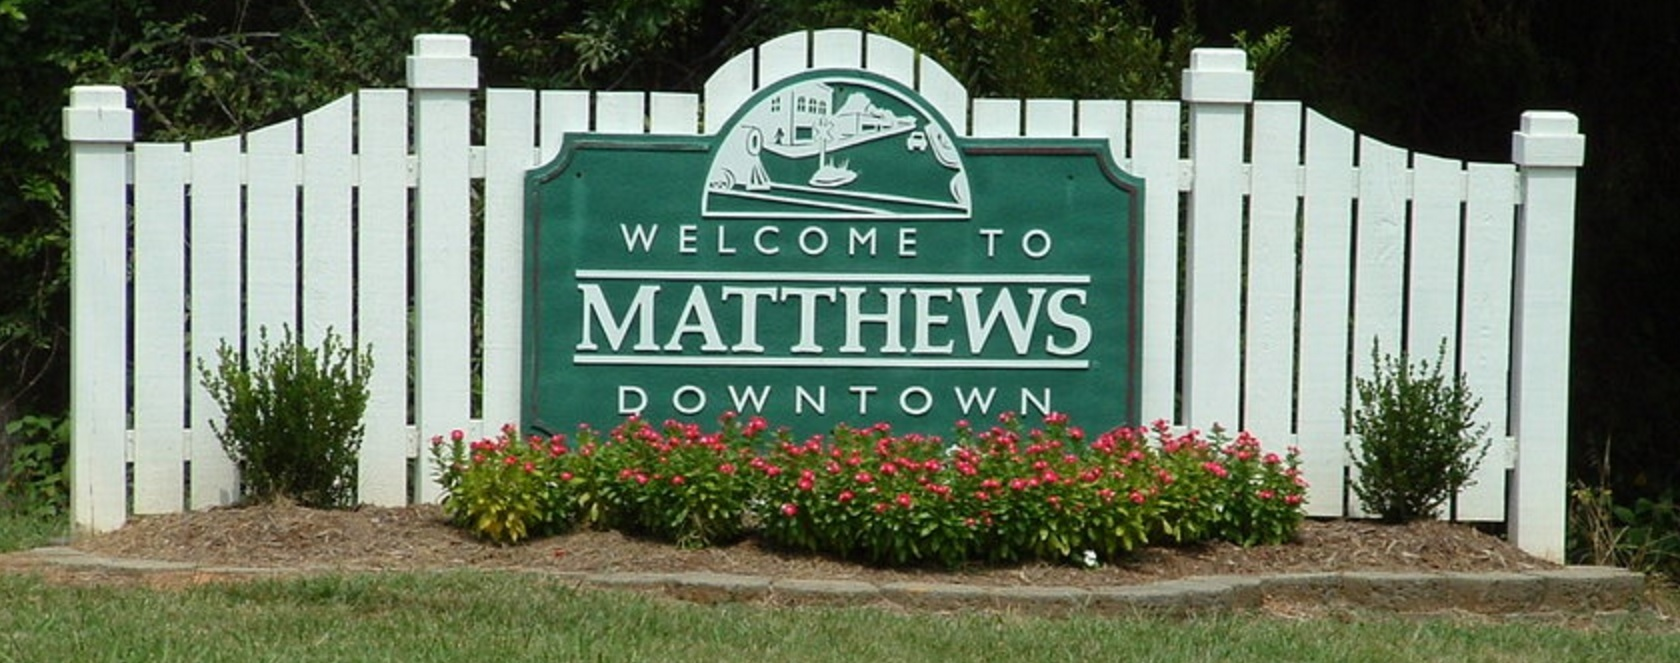 Matthews, NC Housing Market Update